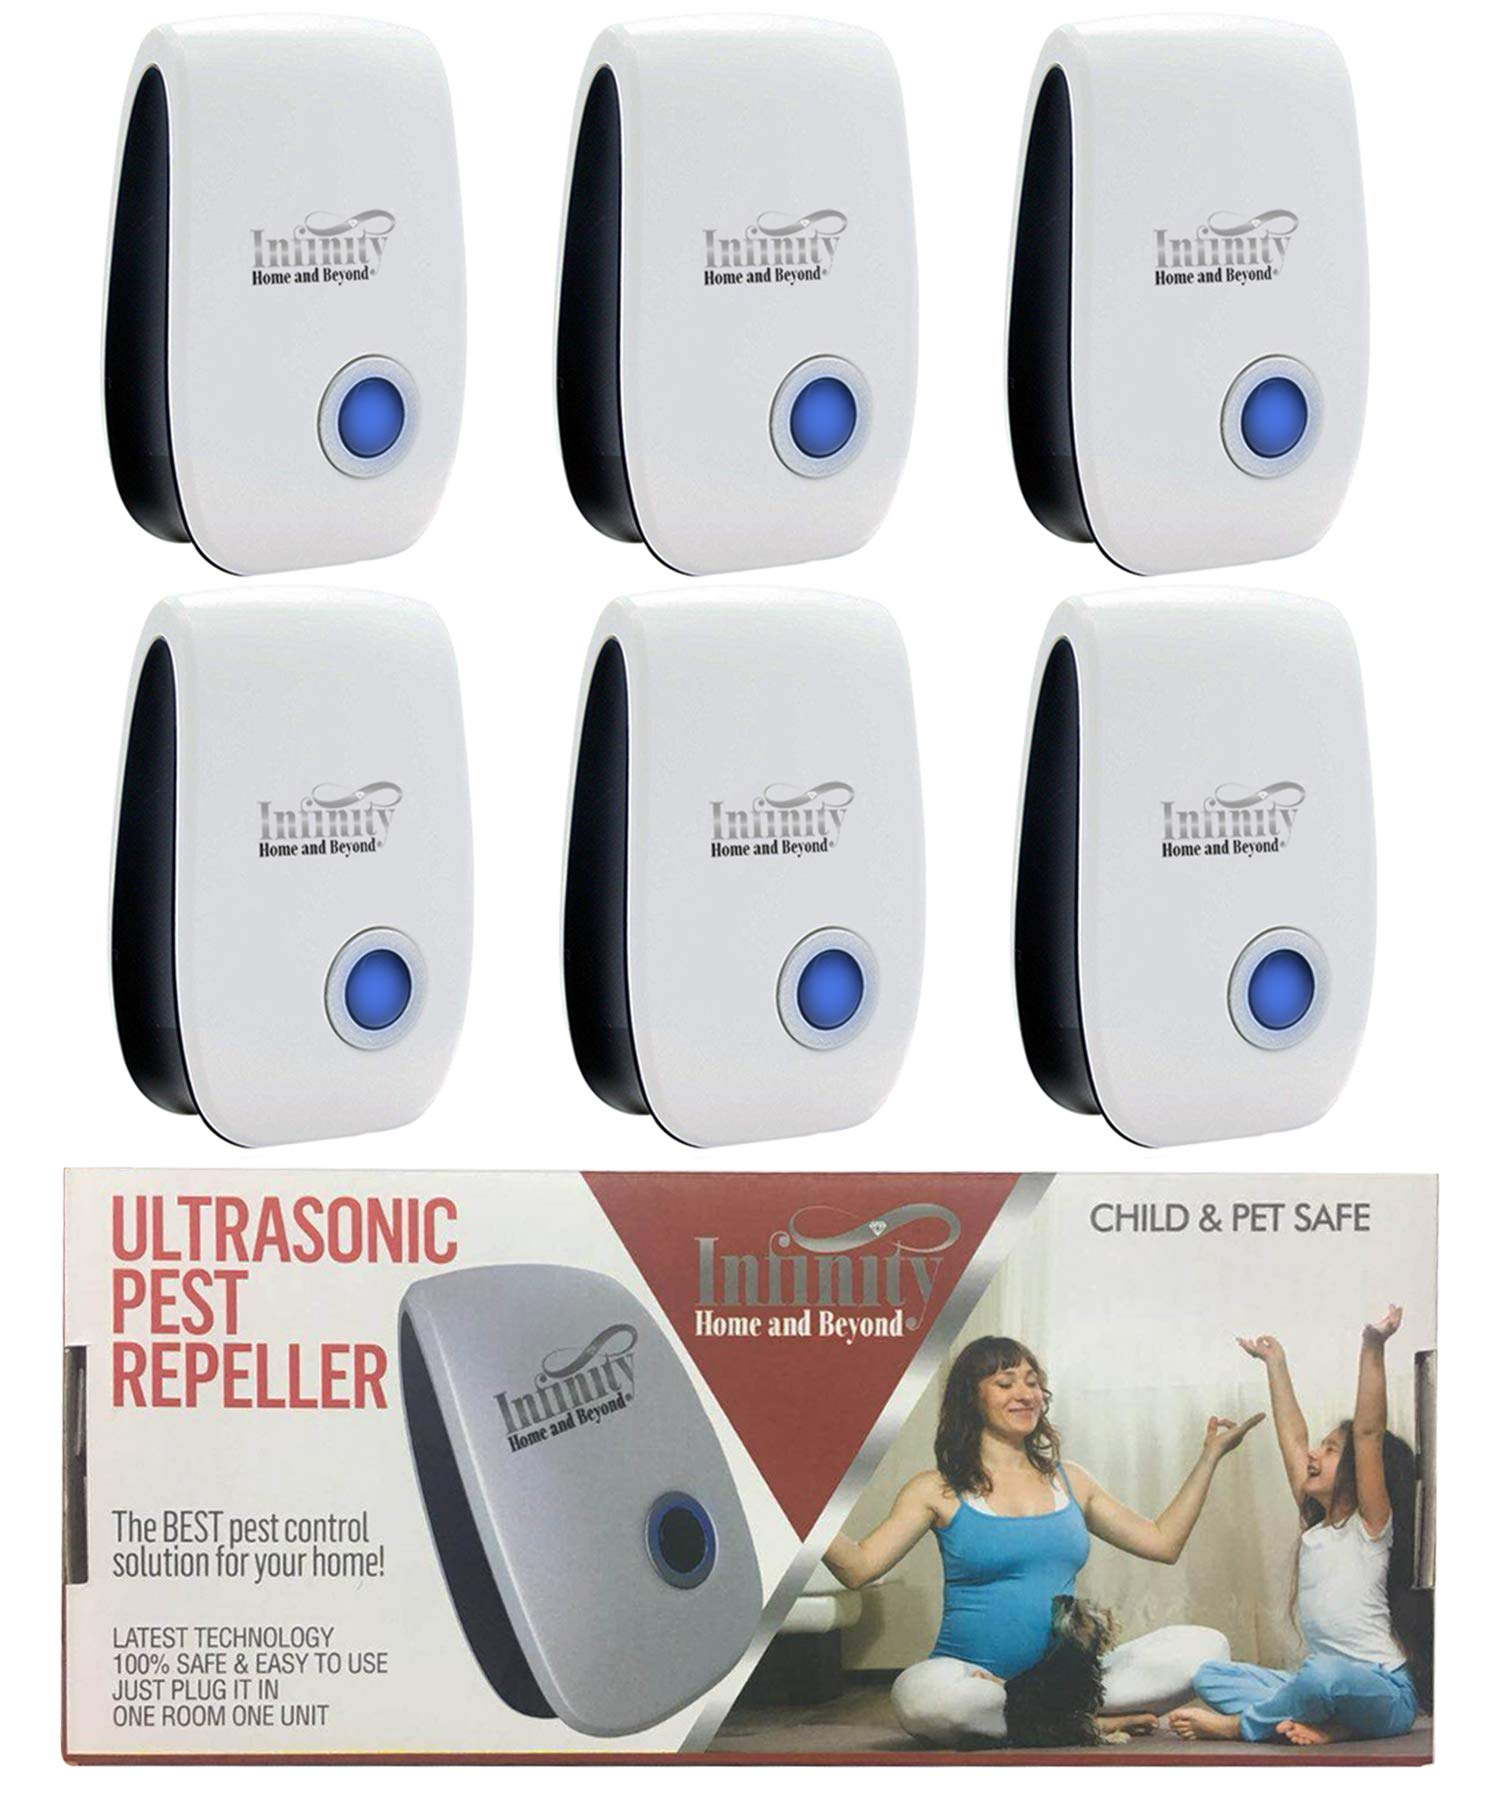 Infinity Home and Beyond Upgraded 2018 Ultrasonic Pest Repeller Plug in Pest Control (6 Pack) - Get Rid of Ants,Mosquitos,Spiders,Mice Repellent - Child and Pet Safe, Clean and Humane